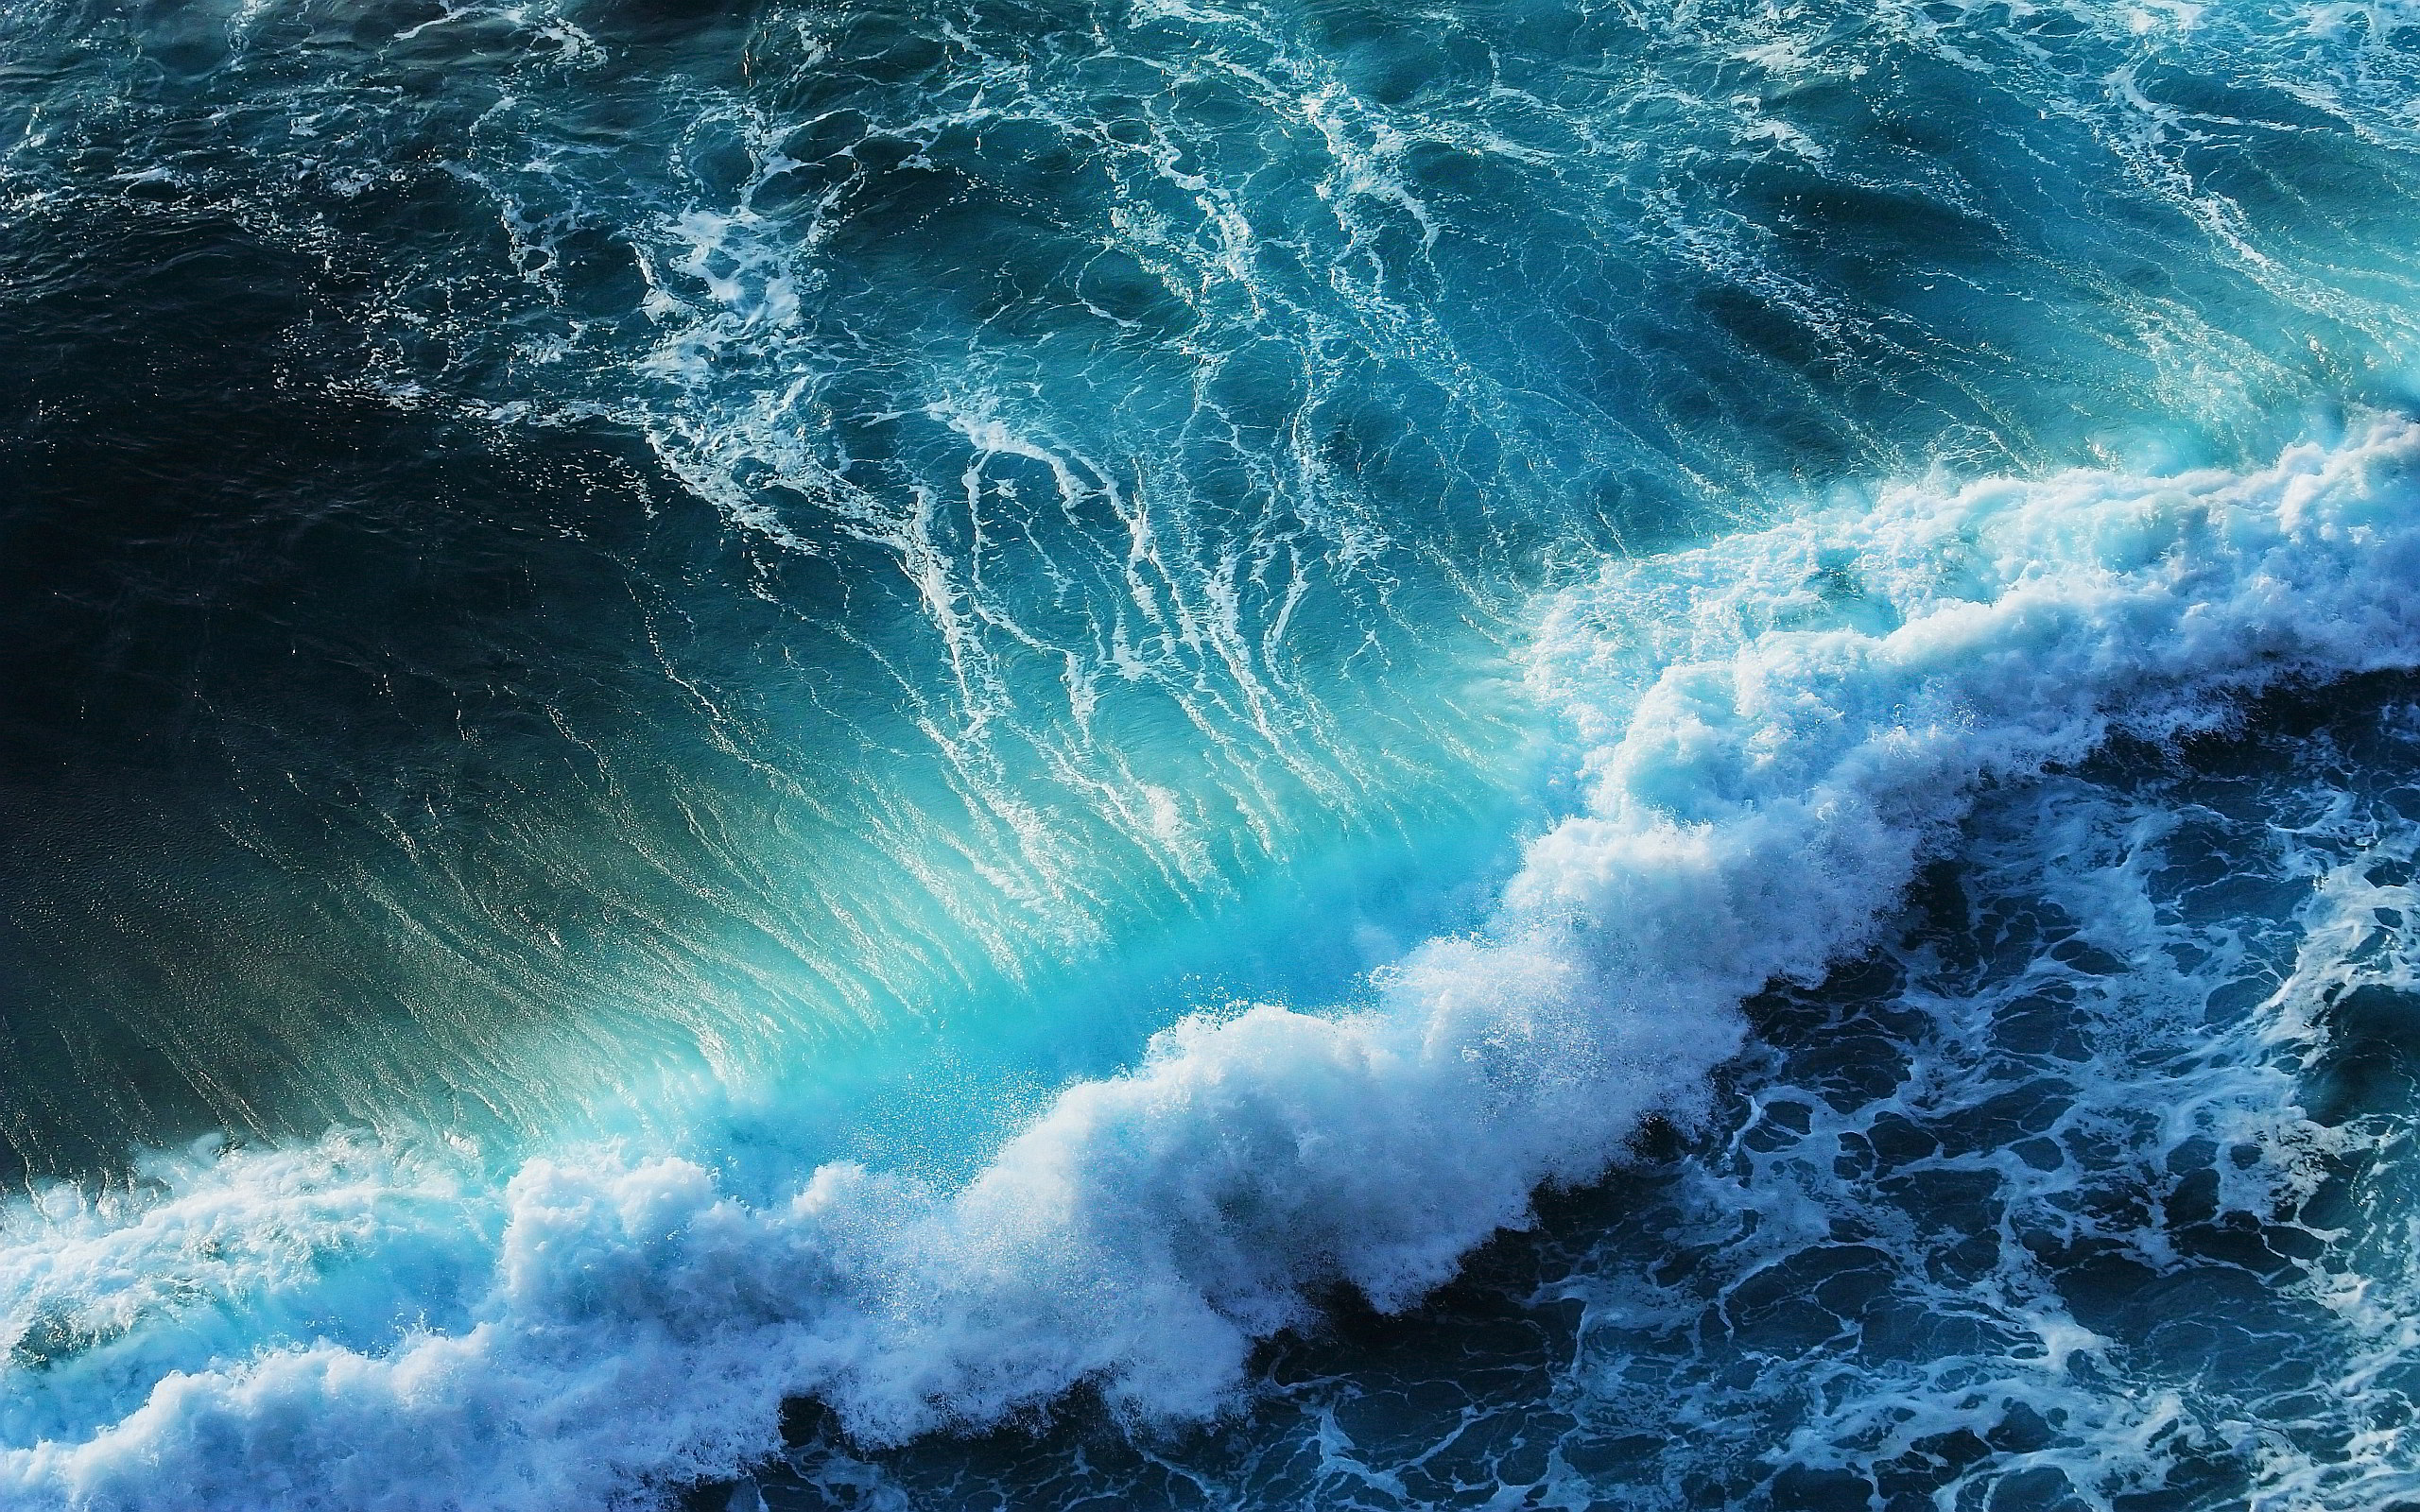 Sea Waves Images